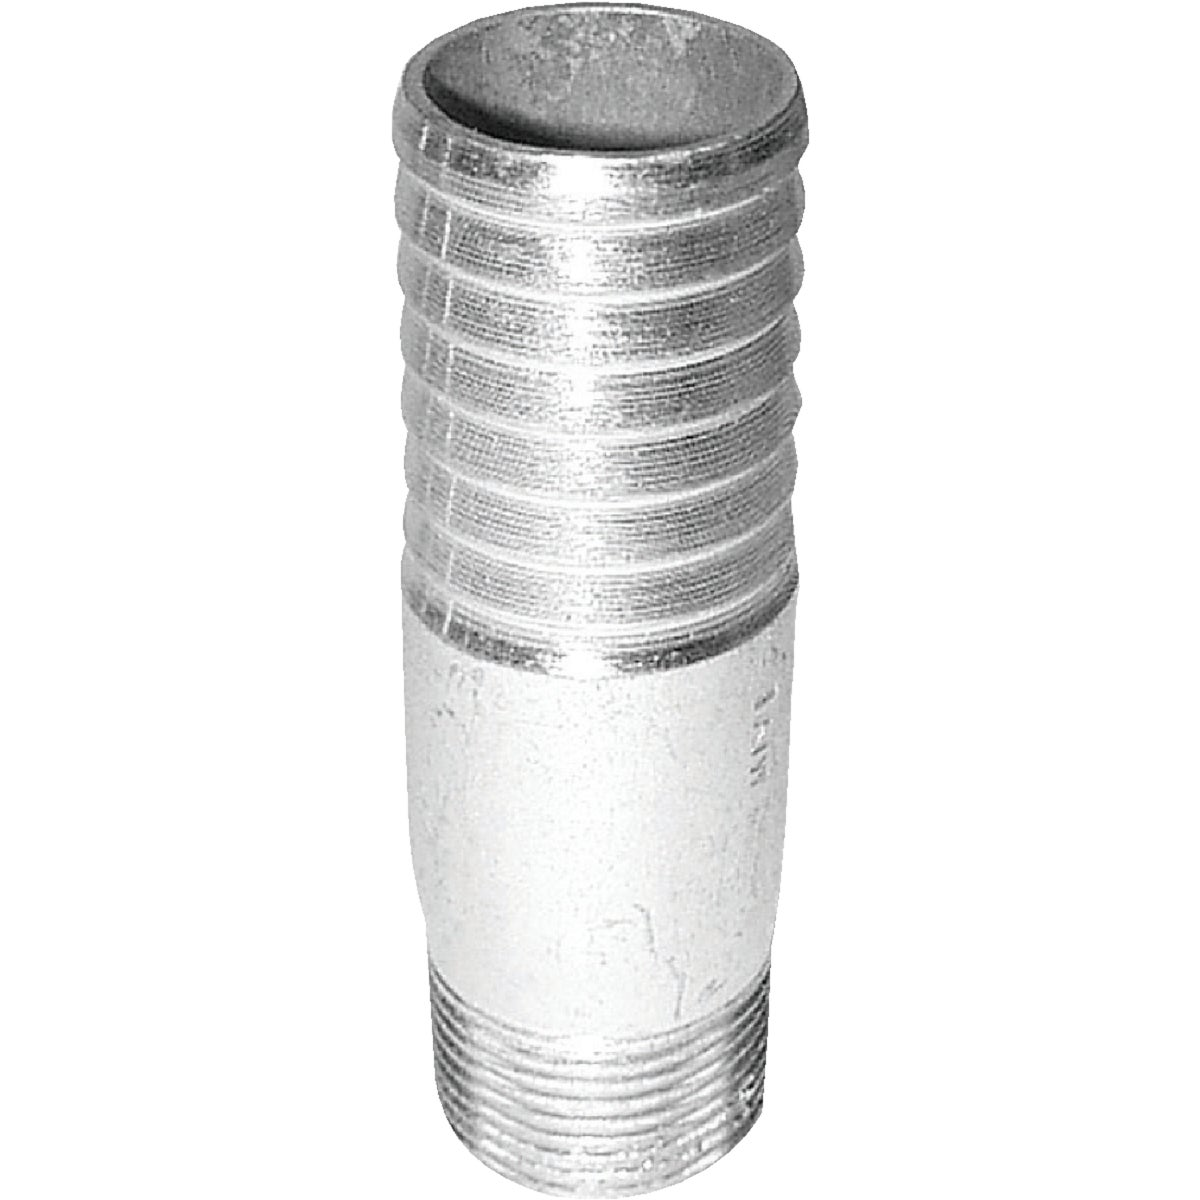 "1X3/4"" THREADED ADAPTER - SMA1075 by Merrill Mfg"